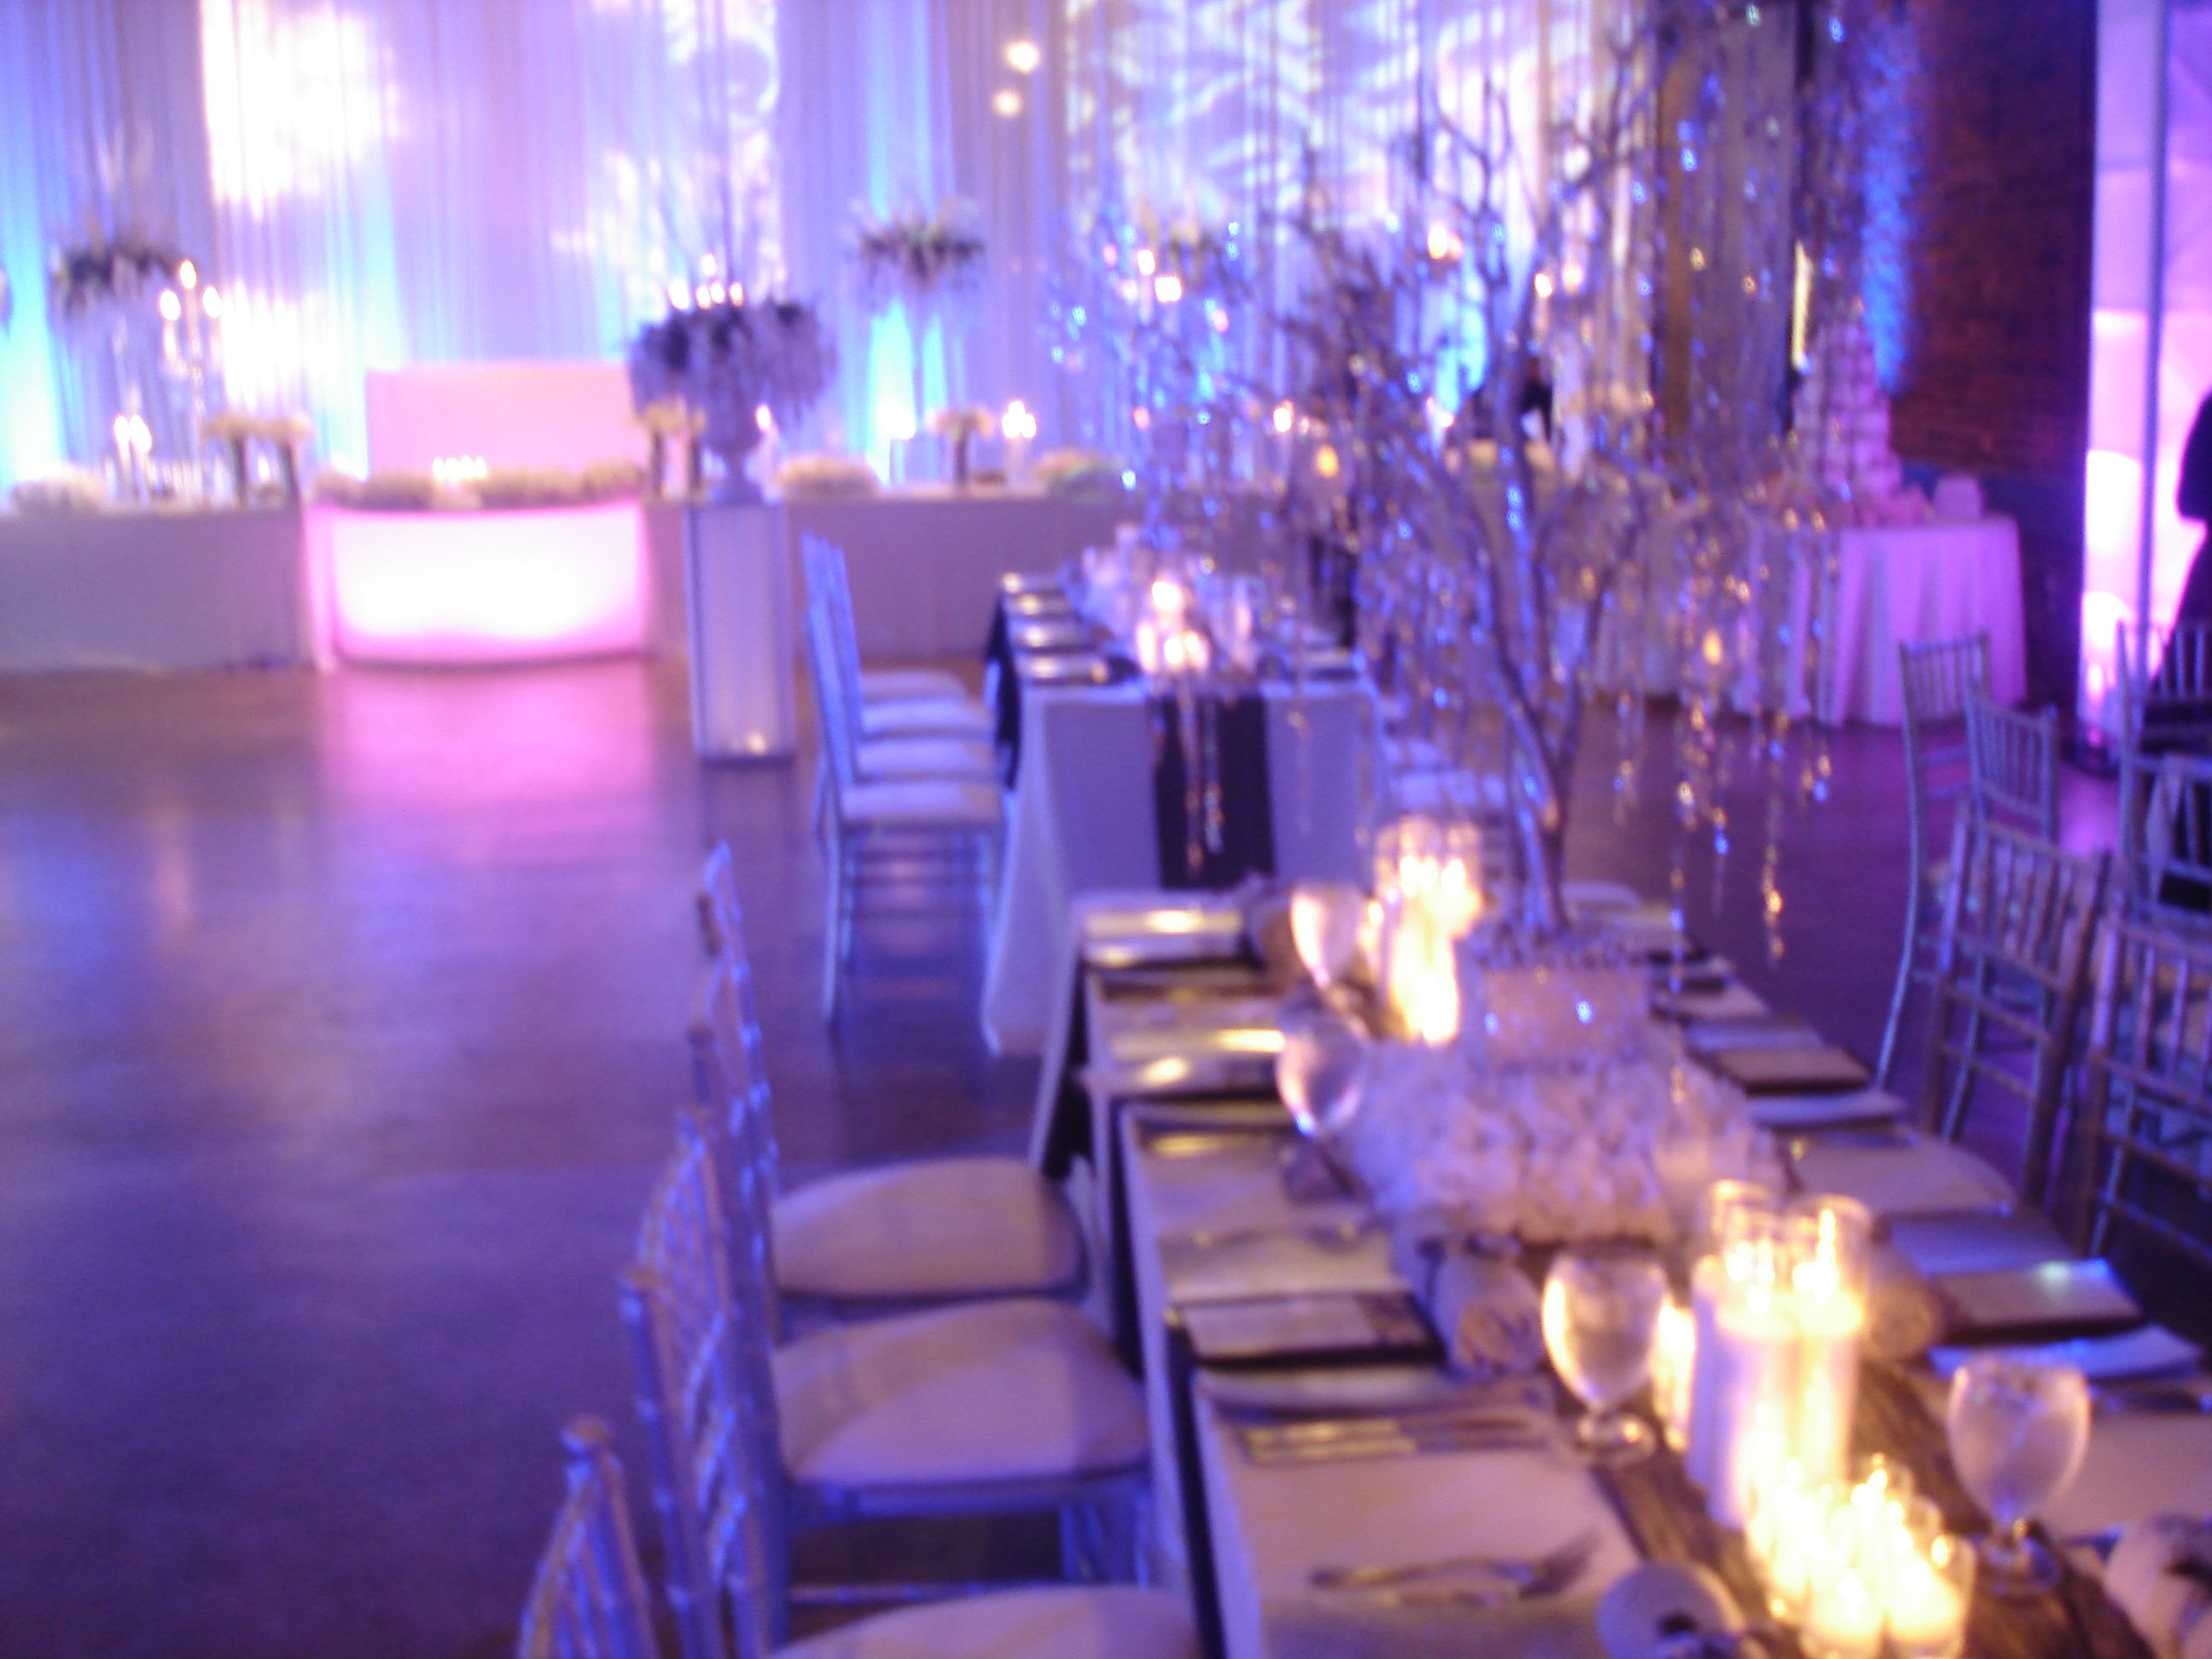 Atlanta Wedding Venue Georgia Railroad Freight Depot Winter Wonderland By Lavish Fantasy Weddings And Events